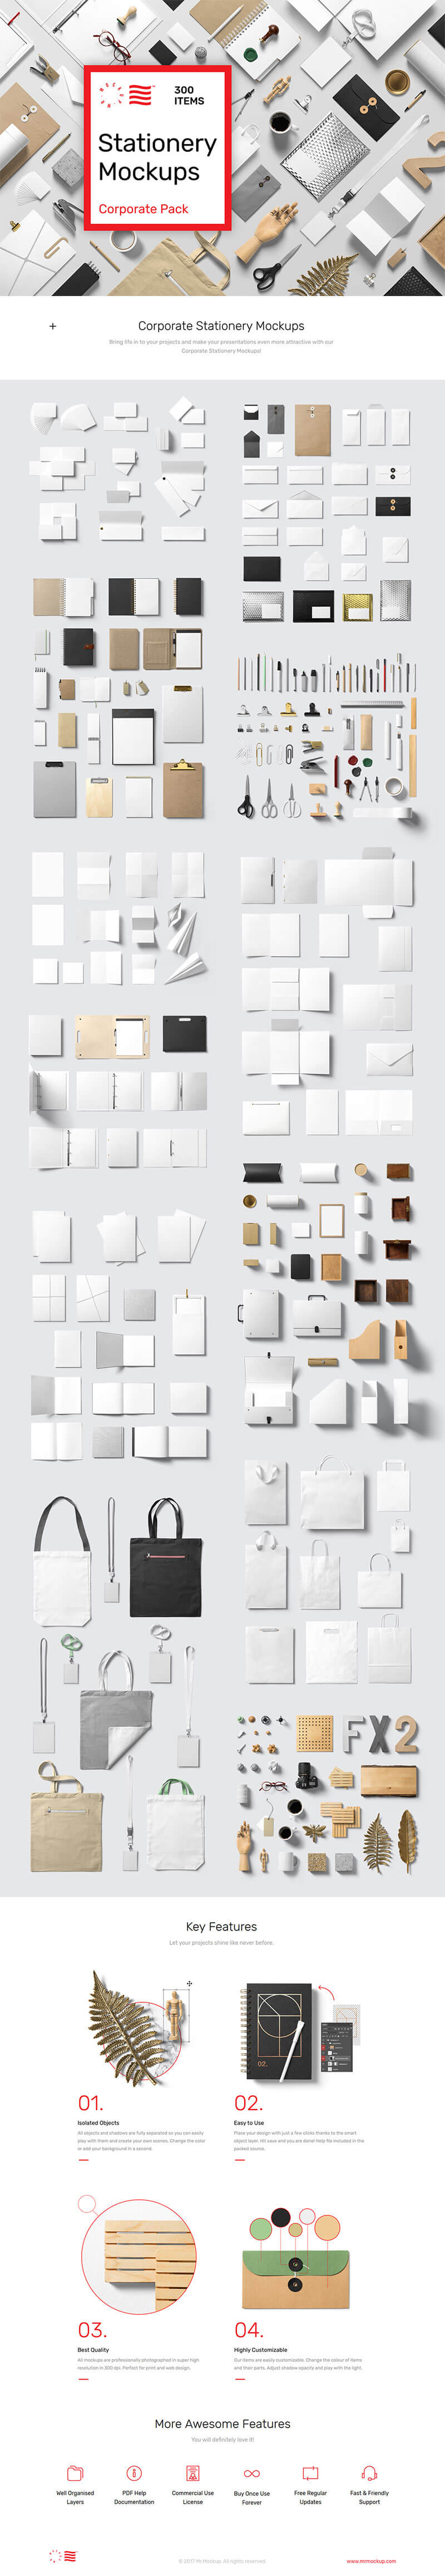 all-encompassing-mockup-collection-a-1